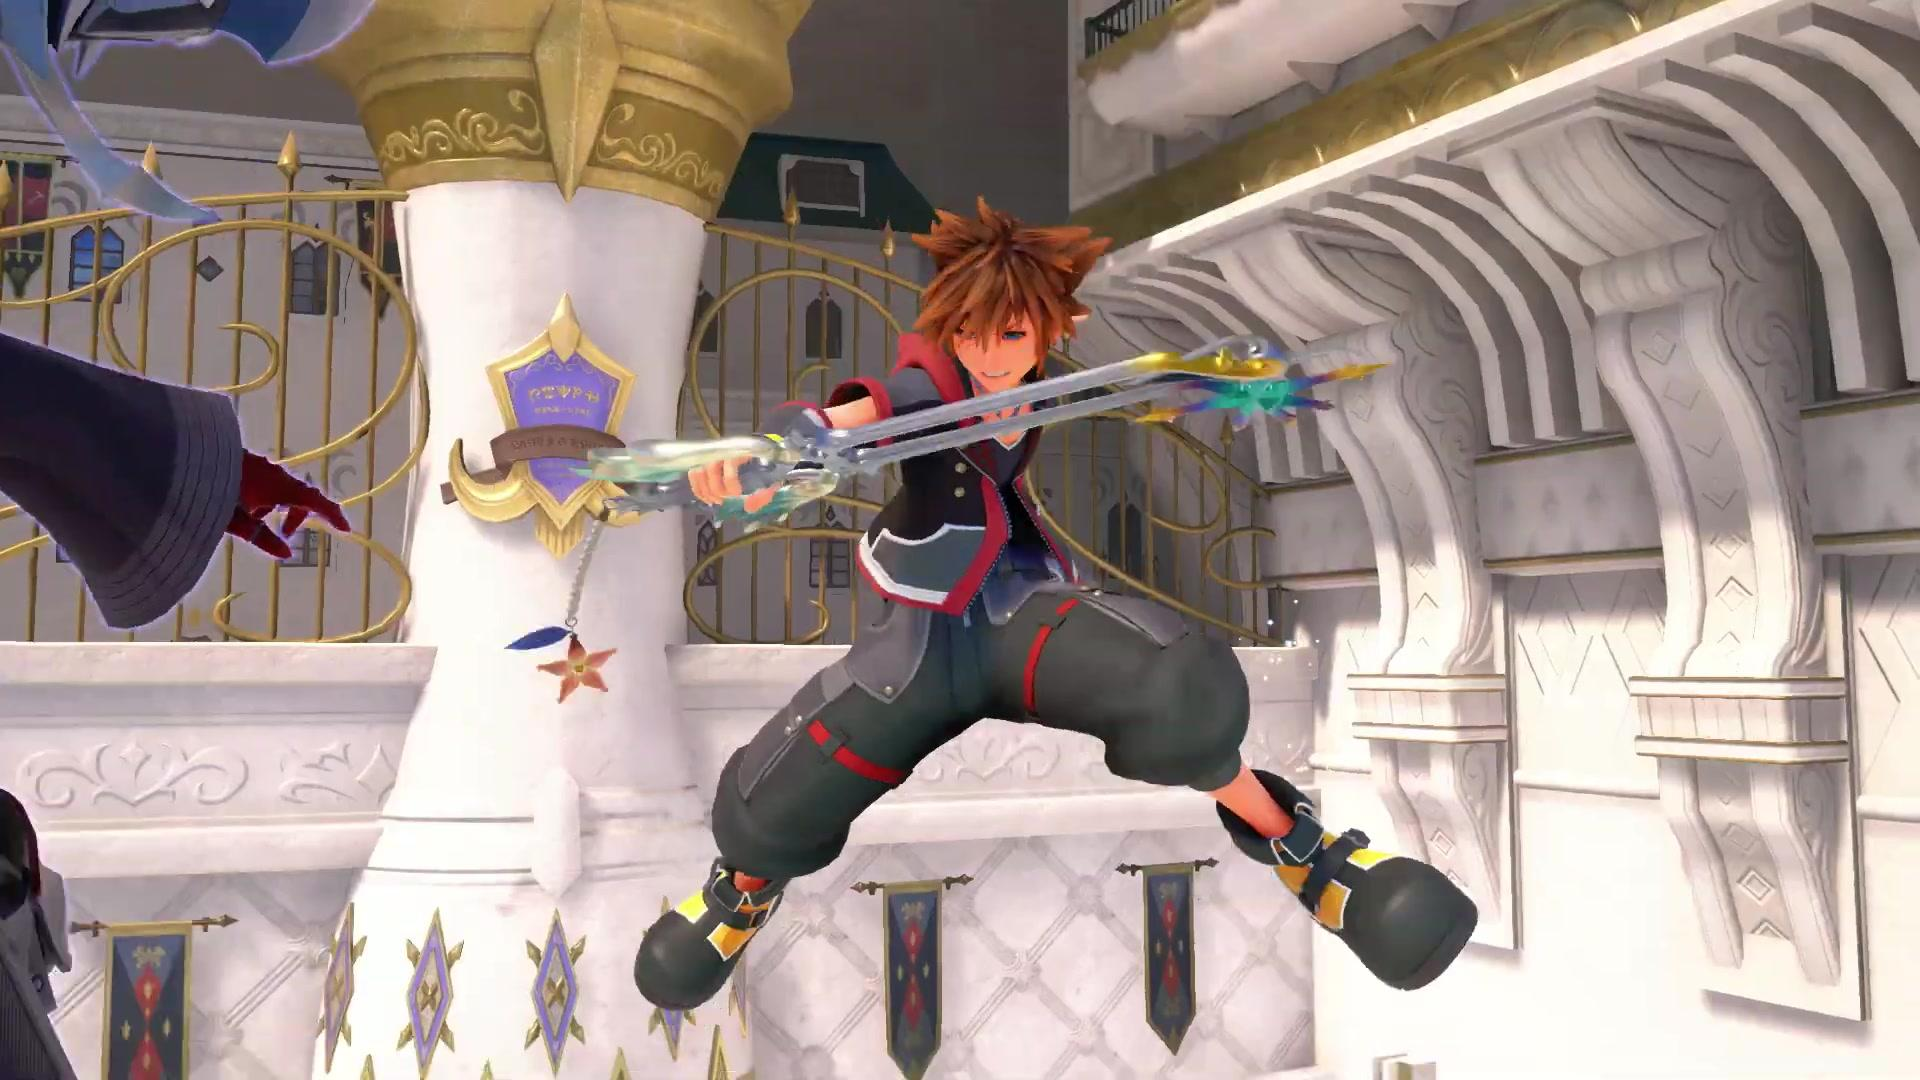 Square Enix will be showing off Kingdom Hearts 3's DLC next week